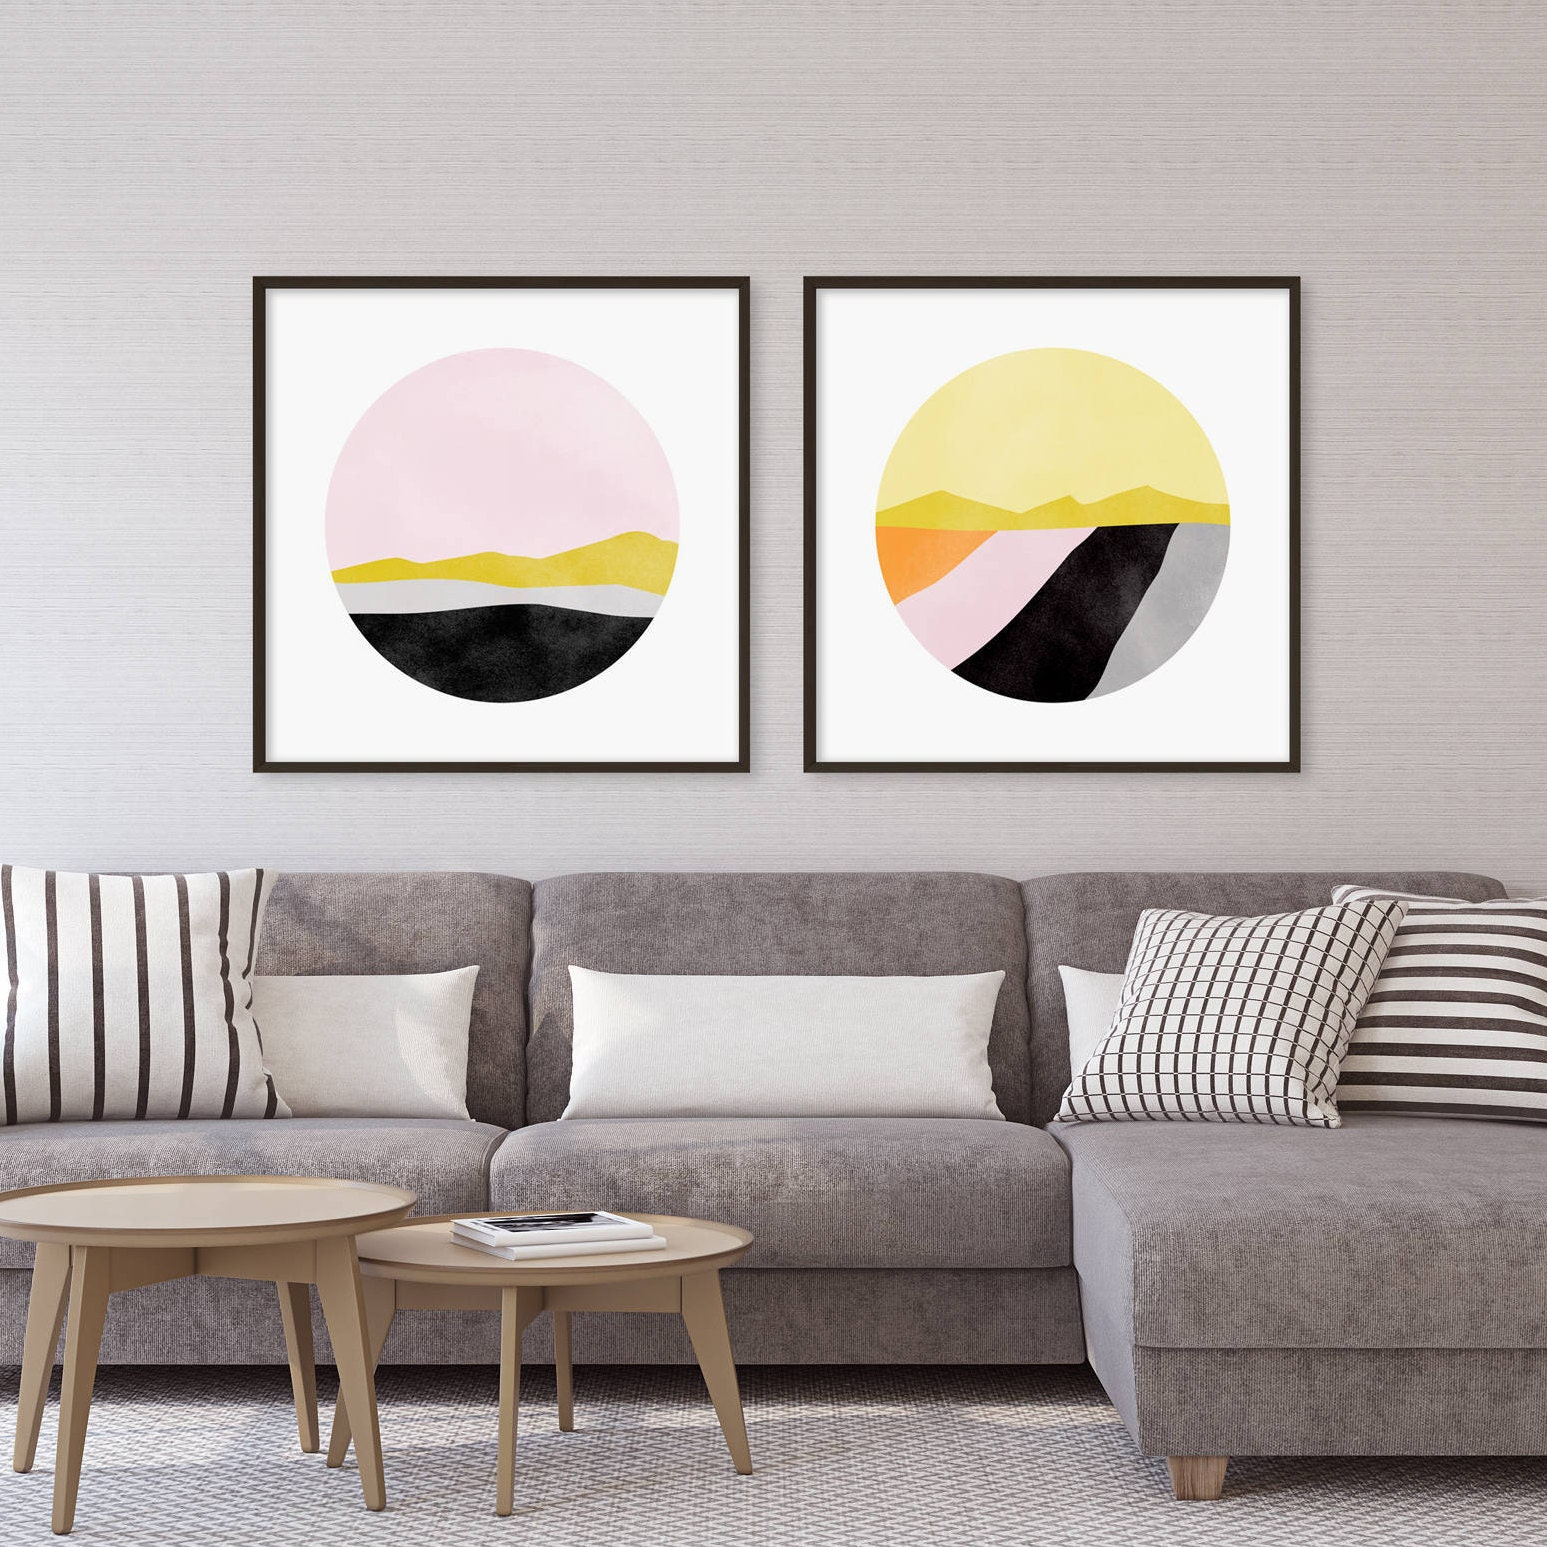 Set Of 2 Prints Large Abstract Art Pink Wall Art Set Office Decor Wall Art Prints Modern Art Large Wall Art Gift For Her Wall Decor